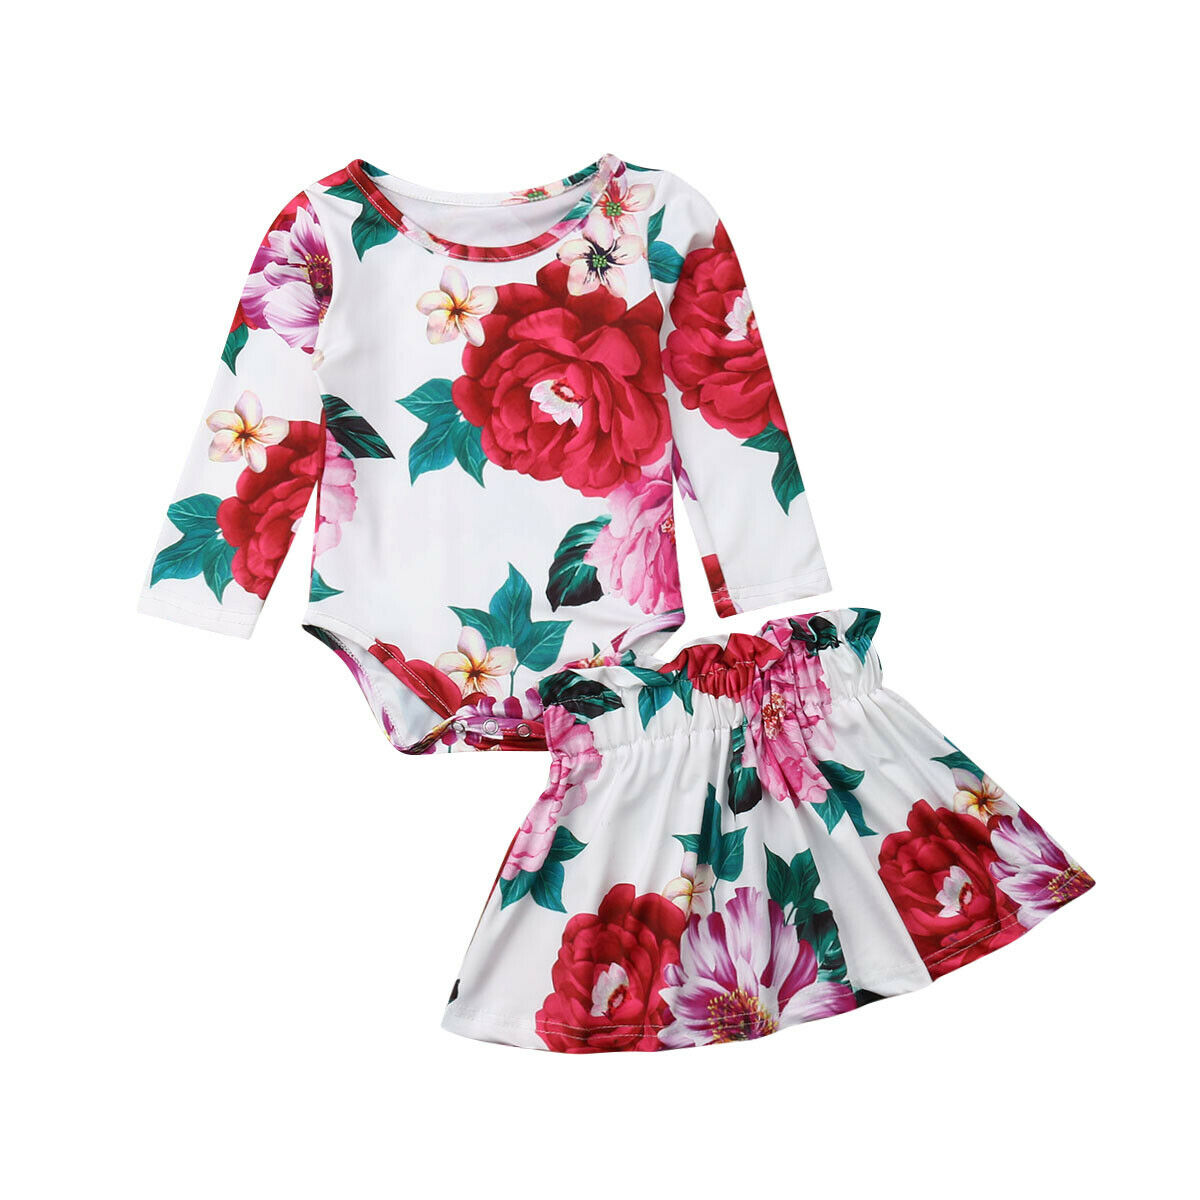 Toddler Baby Clothes Kids Floral Romper Top Long Sleeve Ruffle Skirt Tutu Dress Outfits Clothes Summer 2Pcs